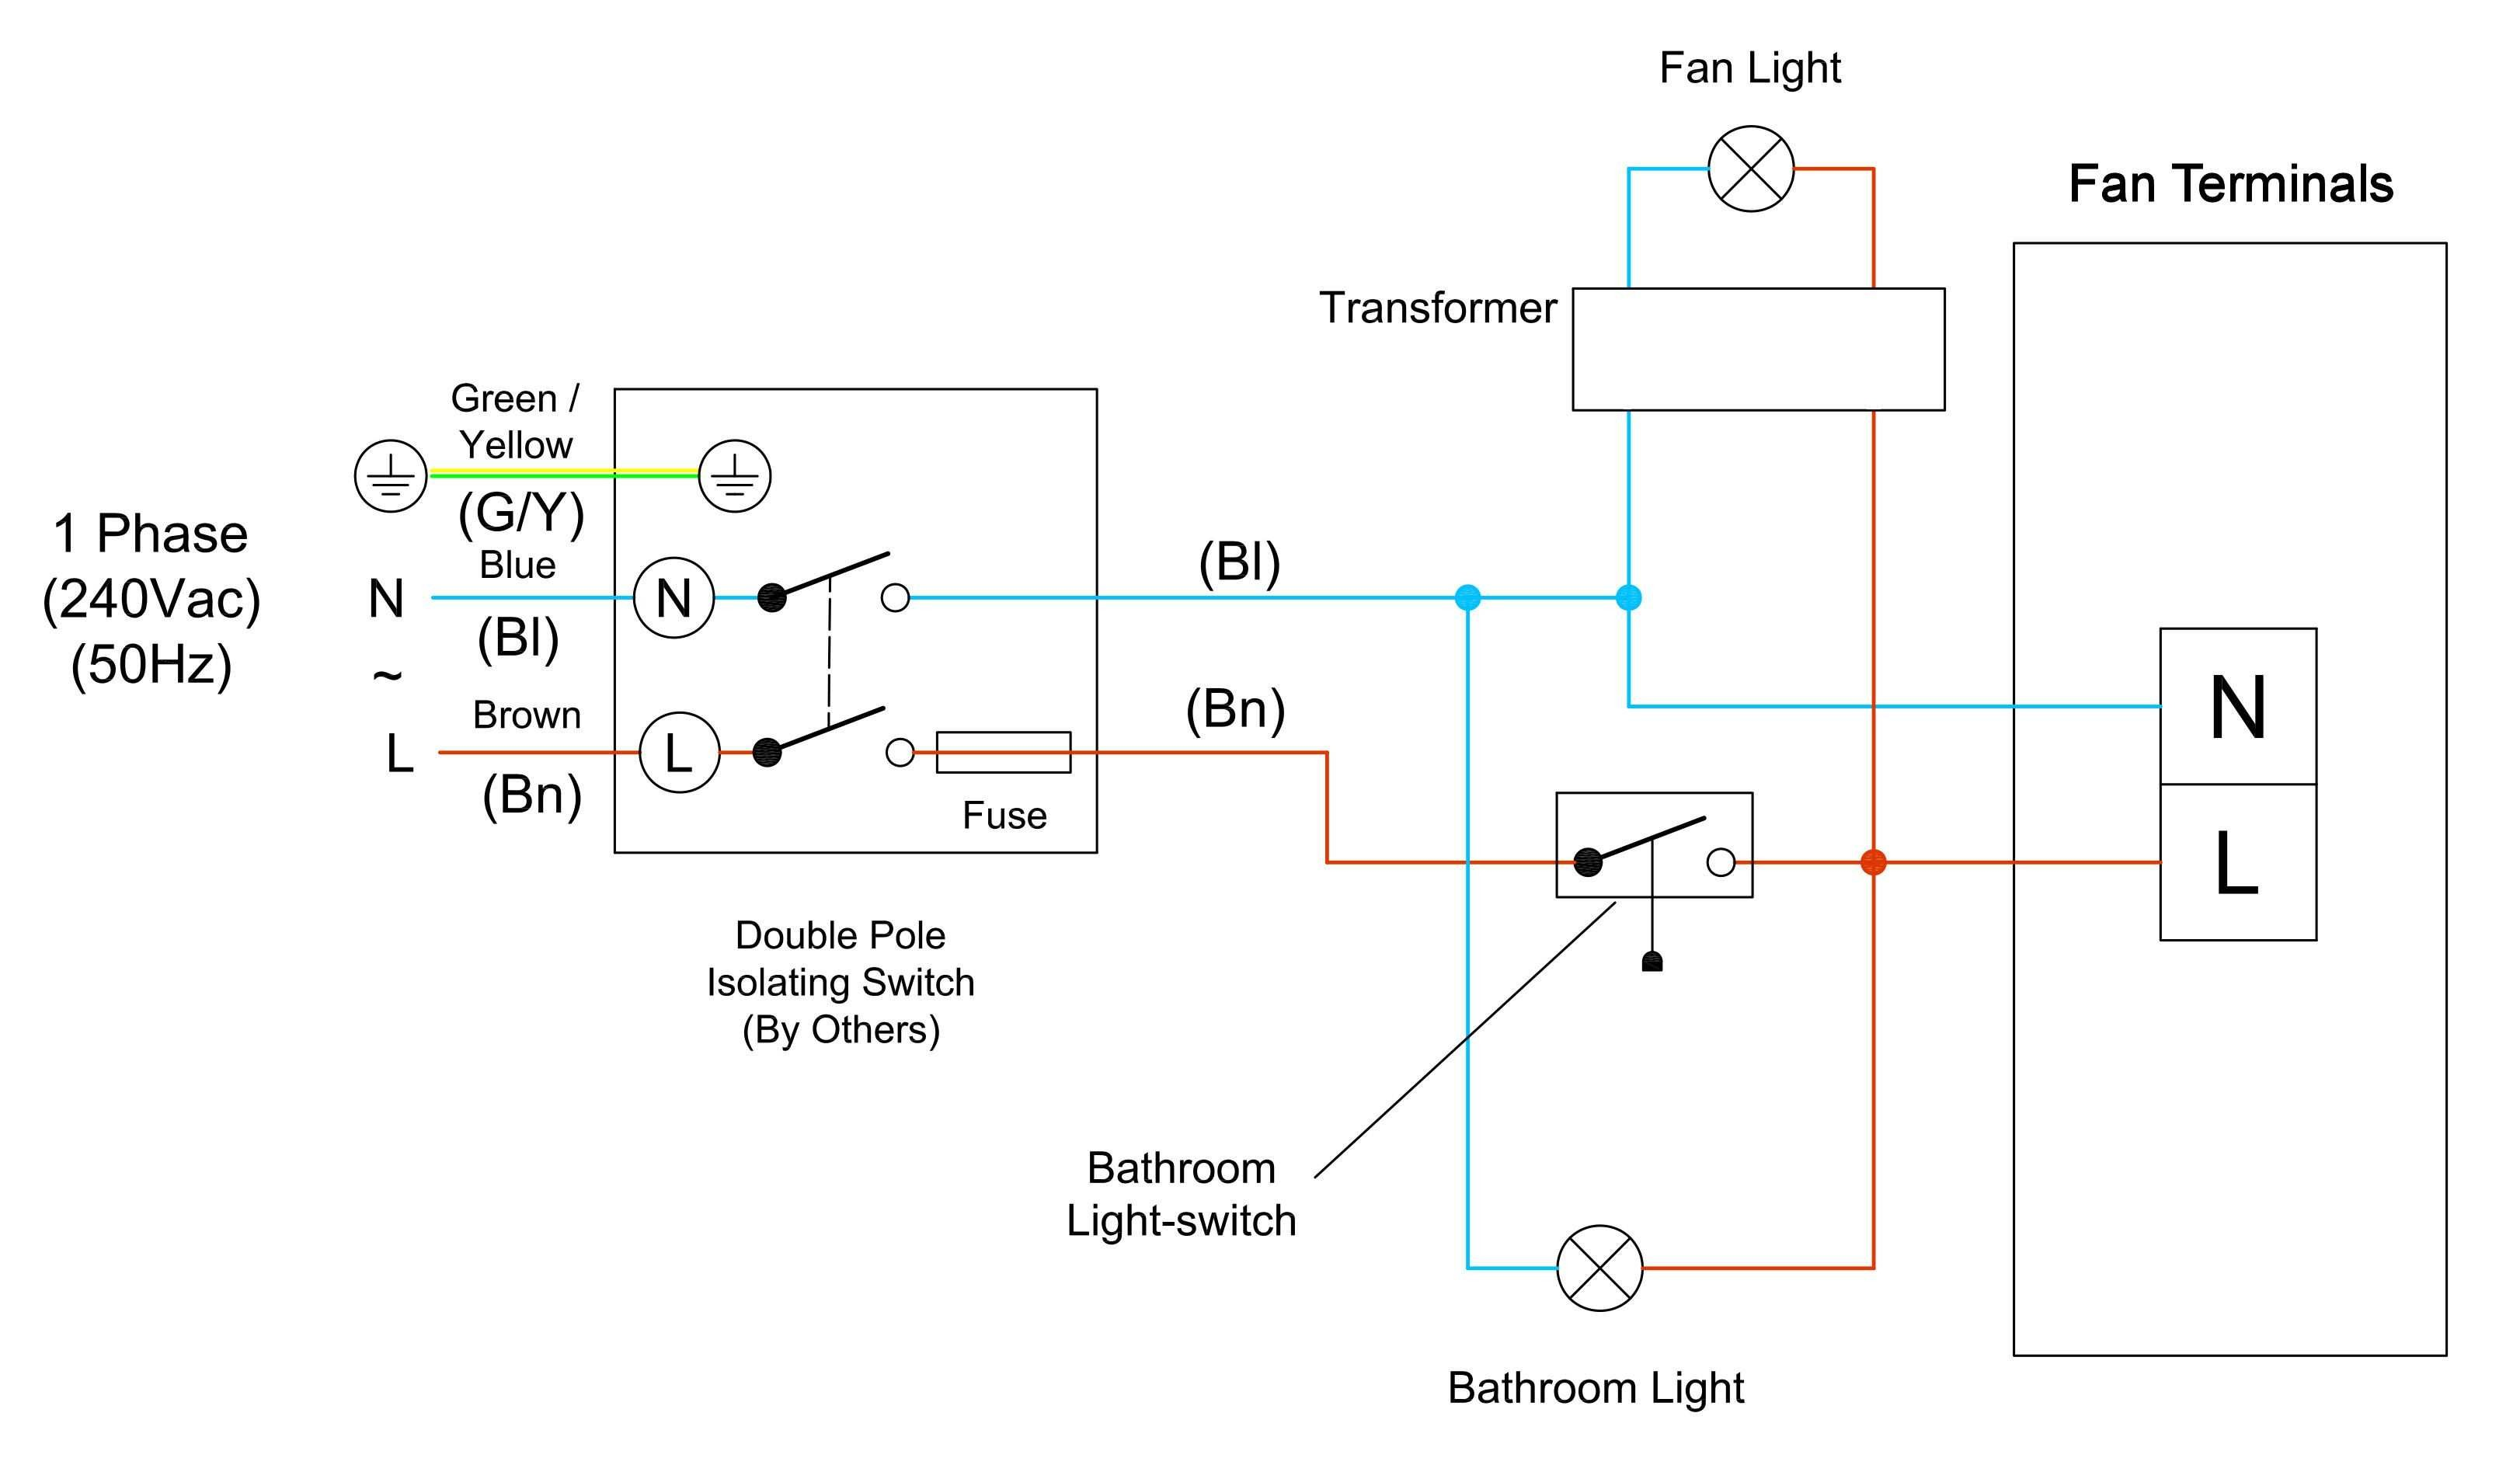 How to Wire Recessed Lighting Diagram Best Wiring A Bathroom Fan and Light Lighting Diagram